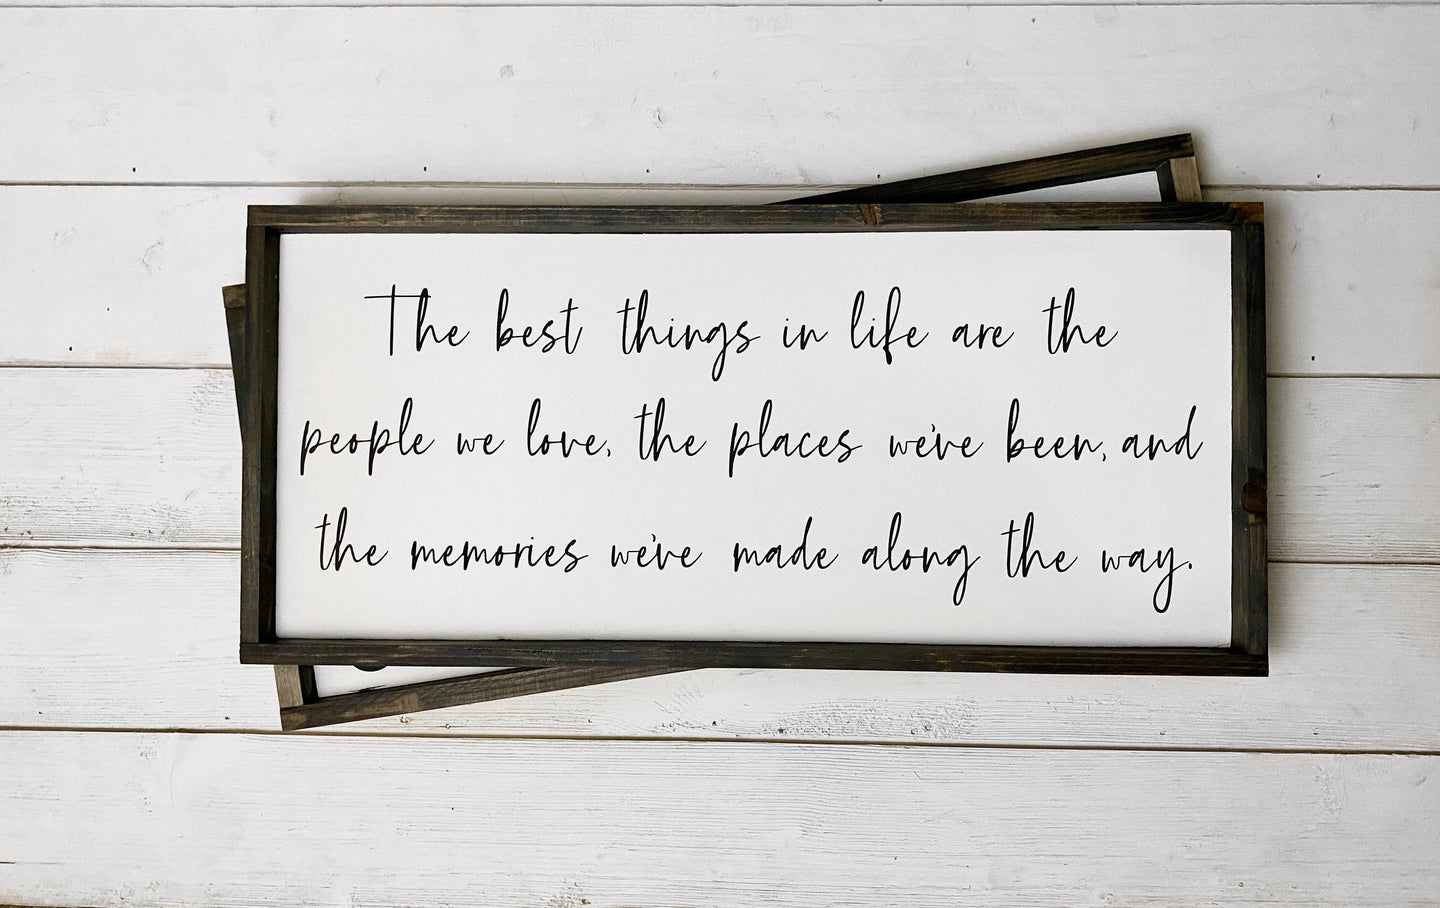 The Best Things In Life Are The People We Love The Places We've Been And The Memories We've Made Along The Way